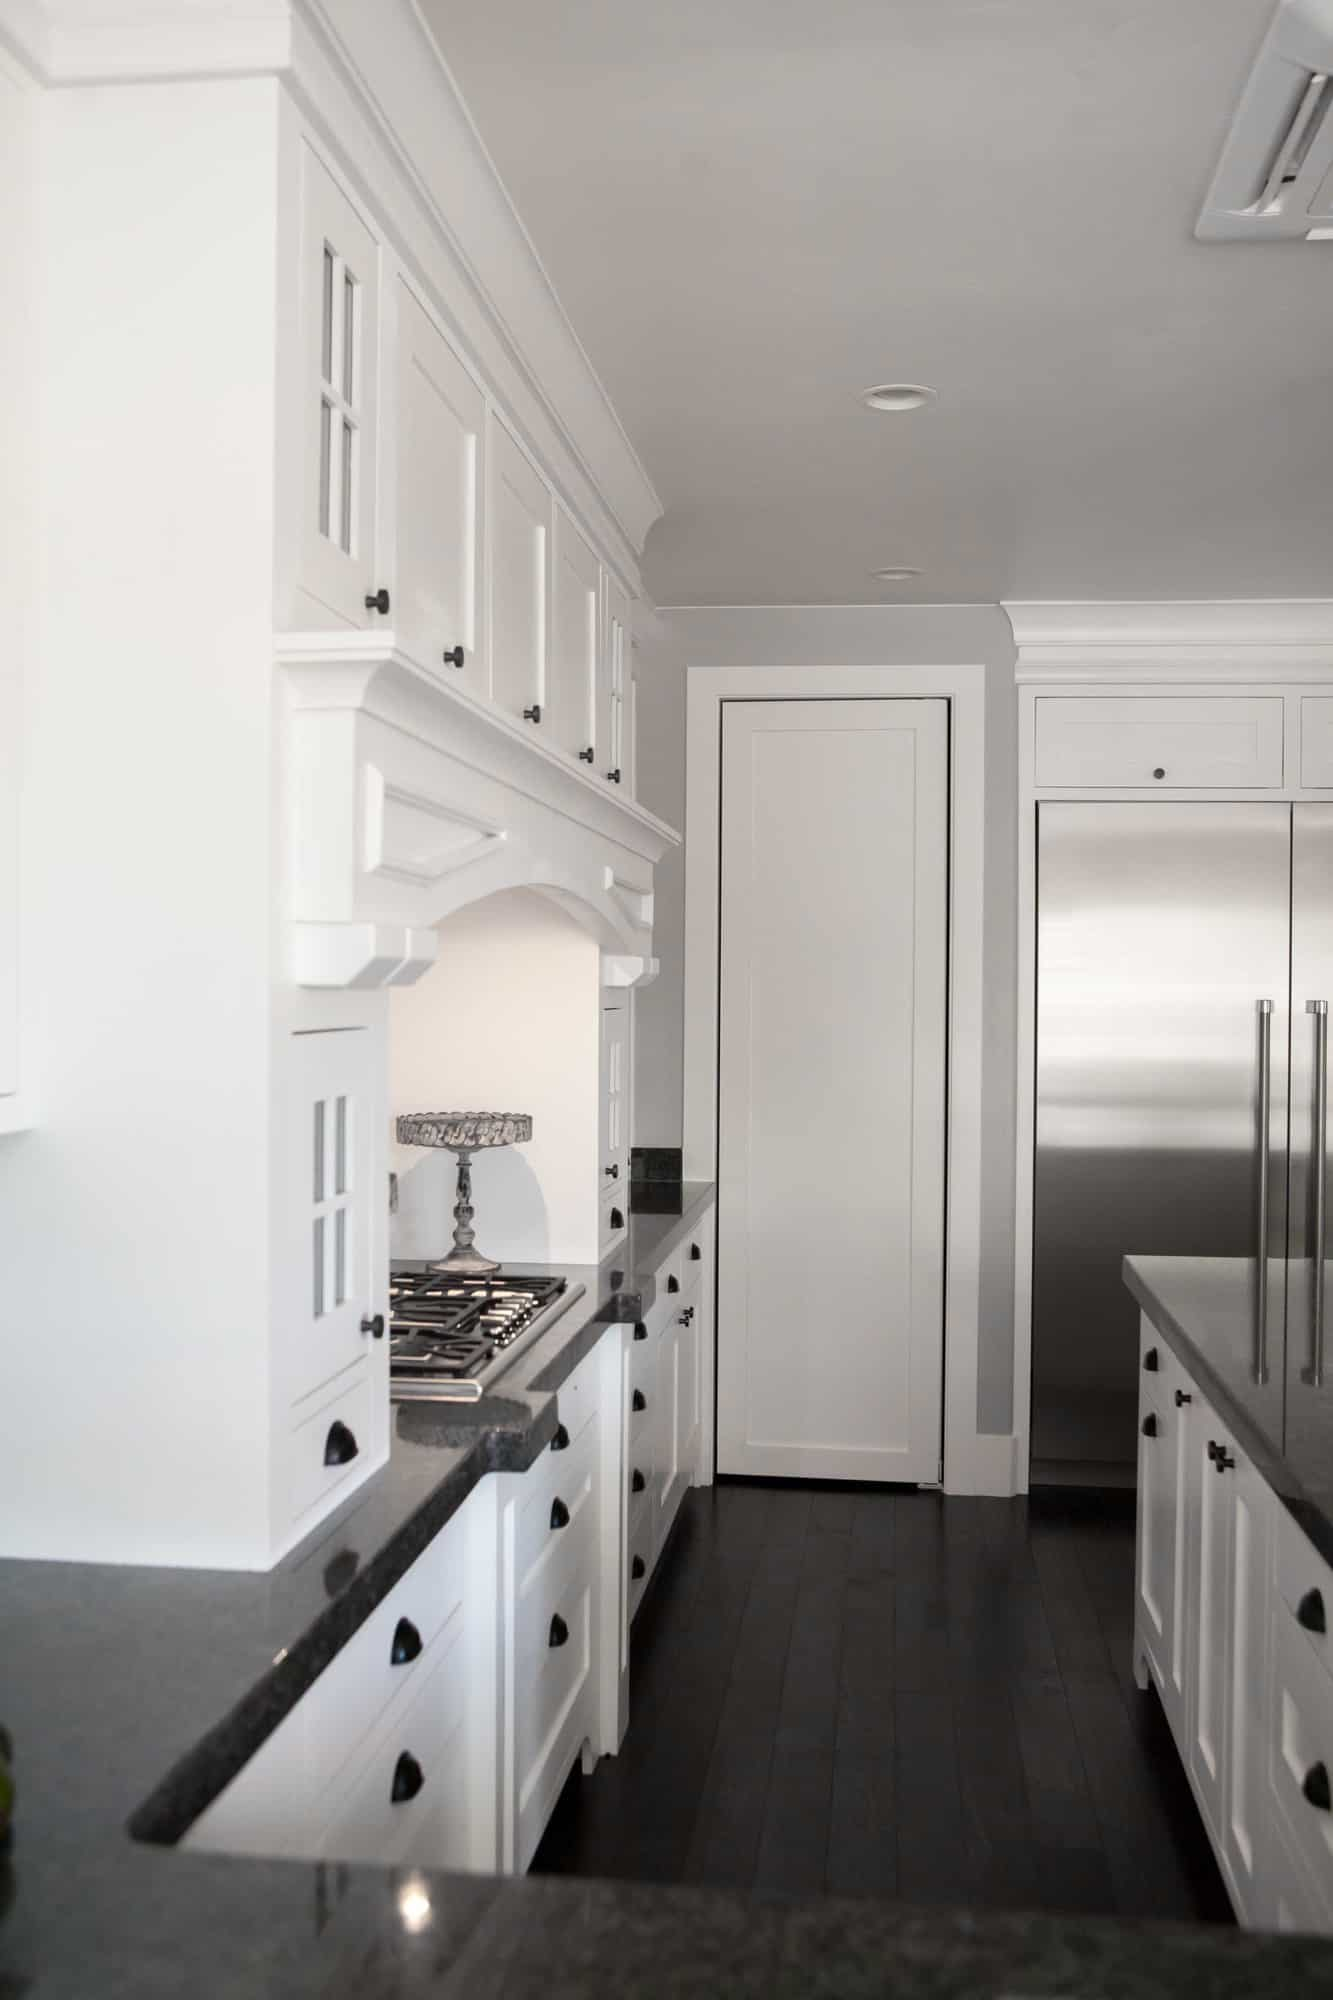 10 Rules to Creating the Perfect White Kitchen - this is a must read before designing or remodeling your dream kitchen! From overthebigmoon.com!